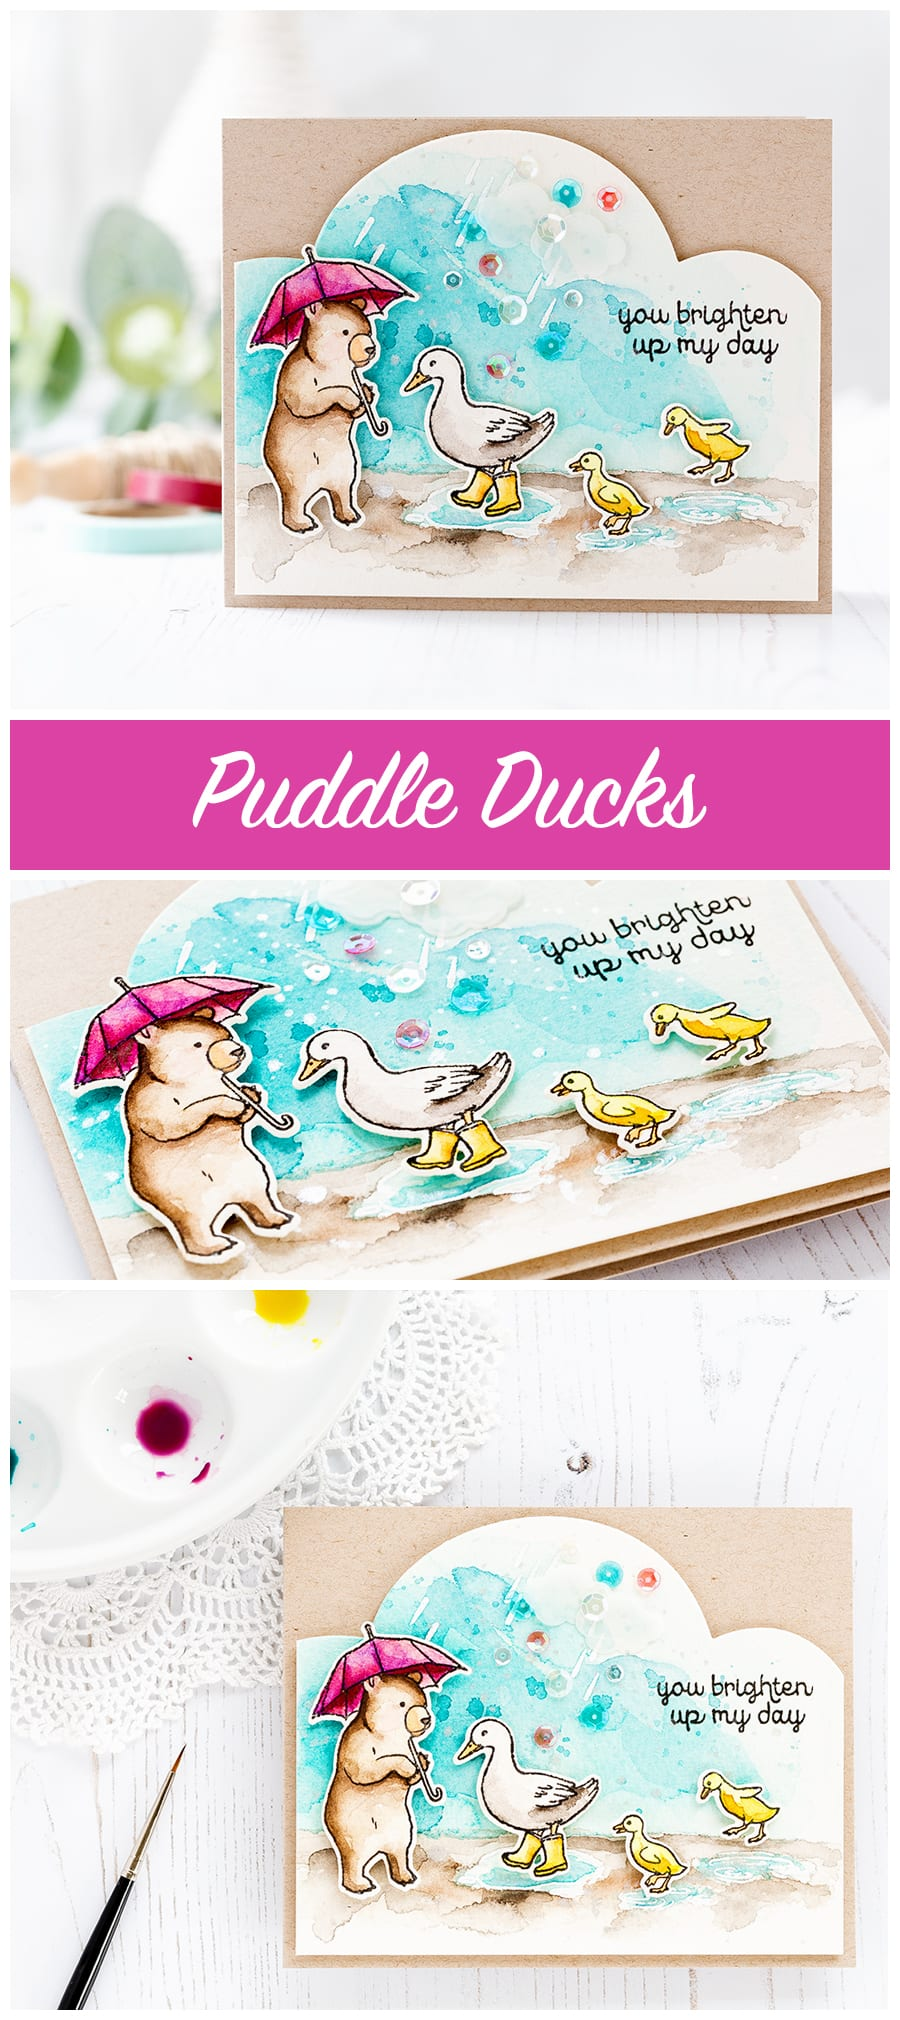 Puddle Ducks card from Debby Hughes using the Hero Arts February My Monthly Hero kit. Find out more about this card by clicking on the following link: https://limedoodledesign.com/2017/02/puddle-ducks-hero-arts-my-monthly-hero/